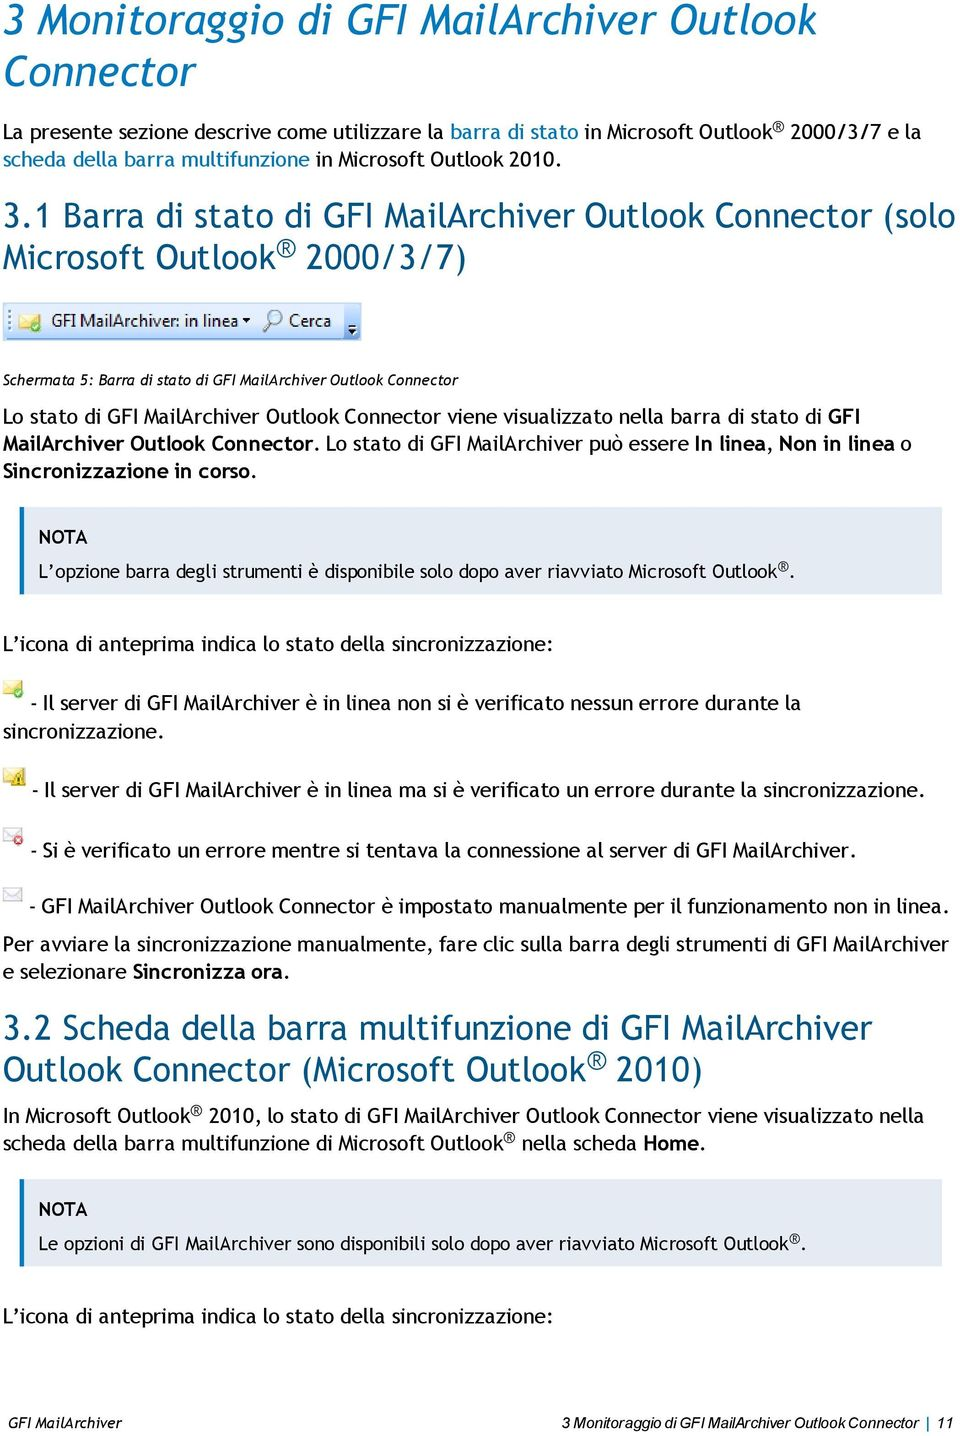 1 Barra di stato di GFI MailArchiver Outlook Connector (solo Microsoft Outlook 2000/3/7) Schermata 5: Barra di stato di GFI MailArchiver Outlook Connector Lo stato di GFI MailArchiver Outlook